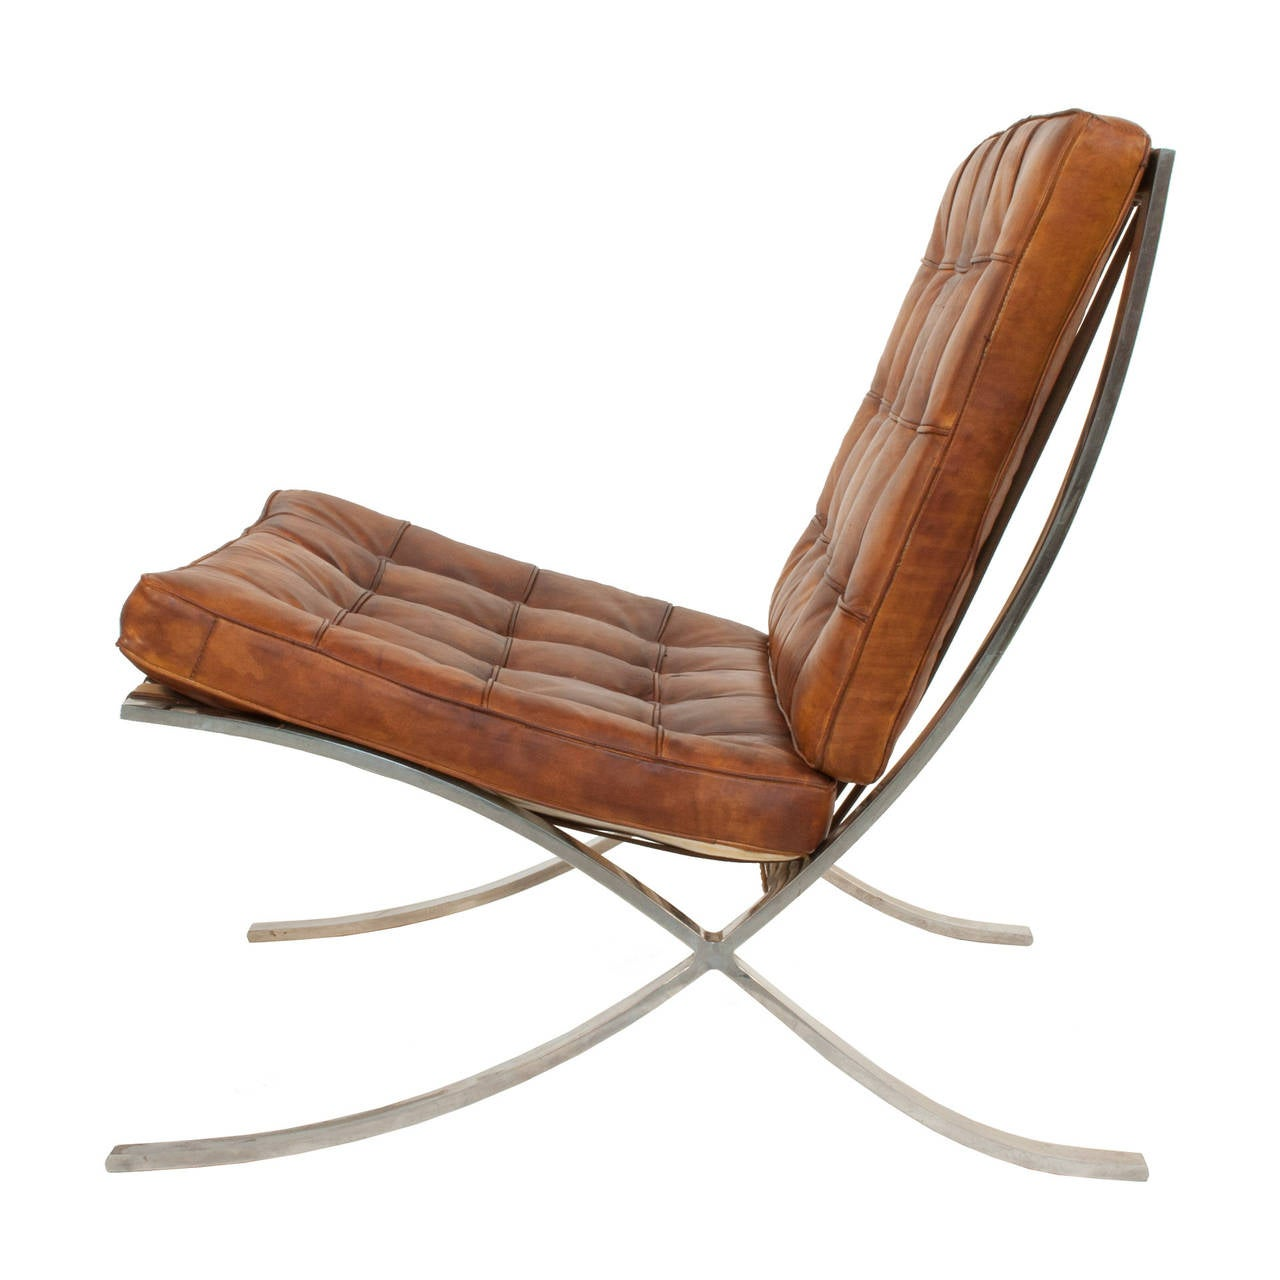 barcelona chair used chairs to watch tv by ludwig mies van der rohe at 1stdibs